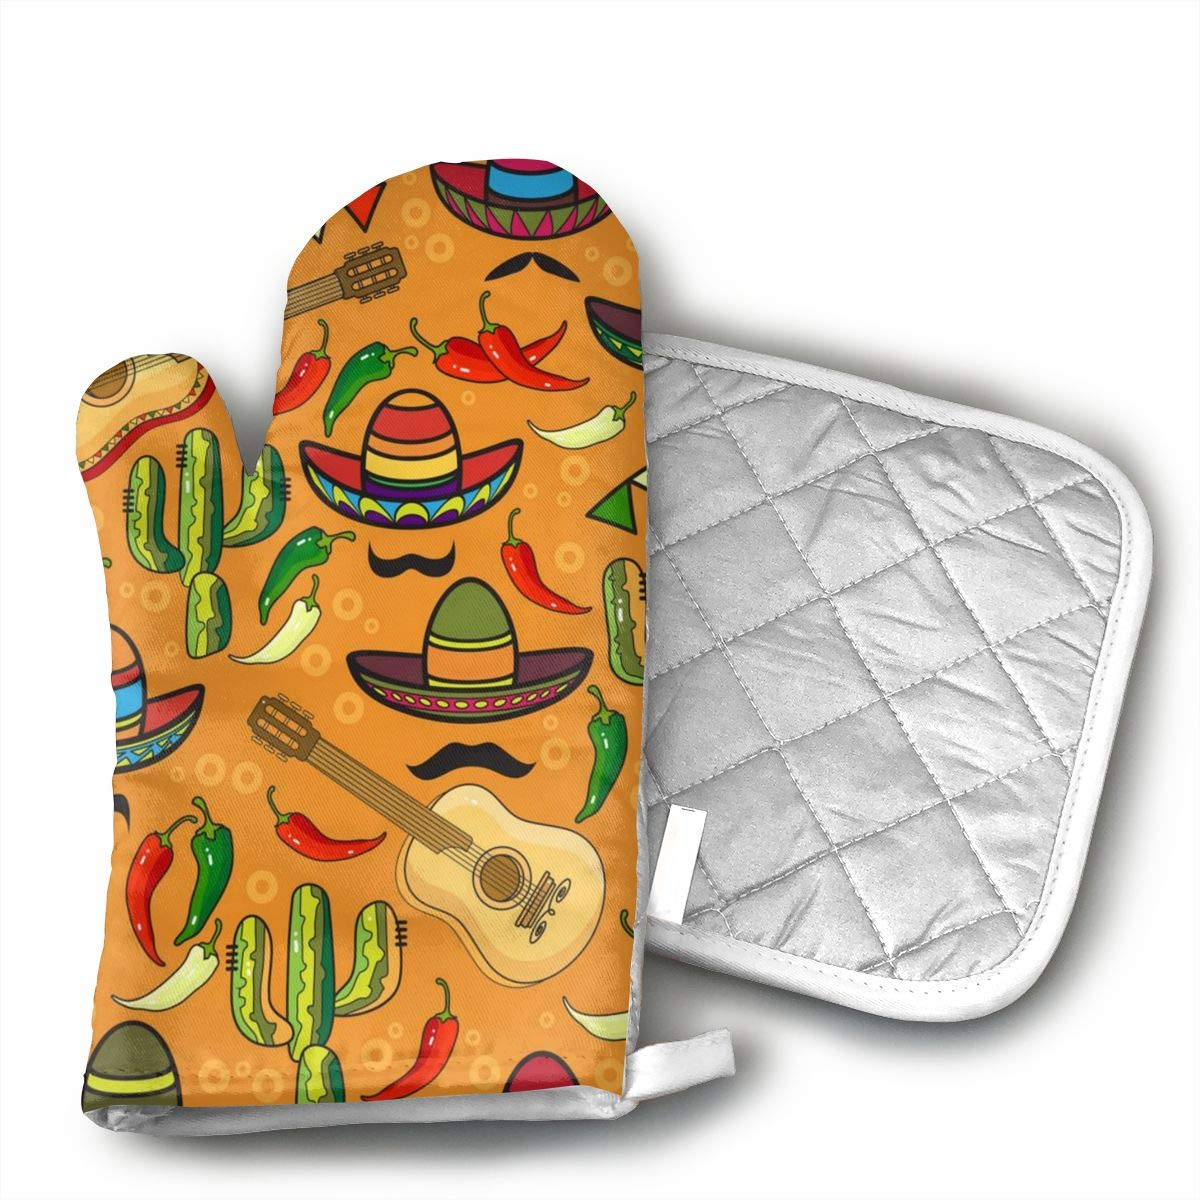 Sjiwqoj8 Sombrero Guitar Pepper Kitchen Oven Mitts,Oven Mitts and Pot Holders,Heat Resistant with Quilted Cotton Lining,Cooking,Baking,Grilling,Barbecue